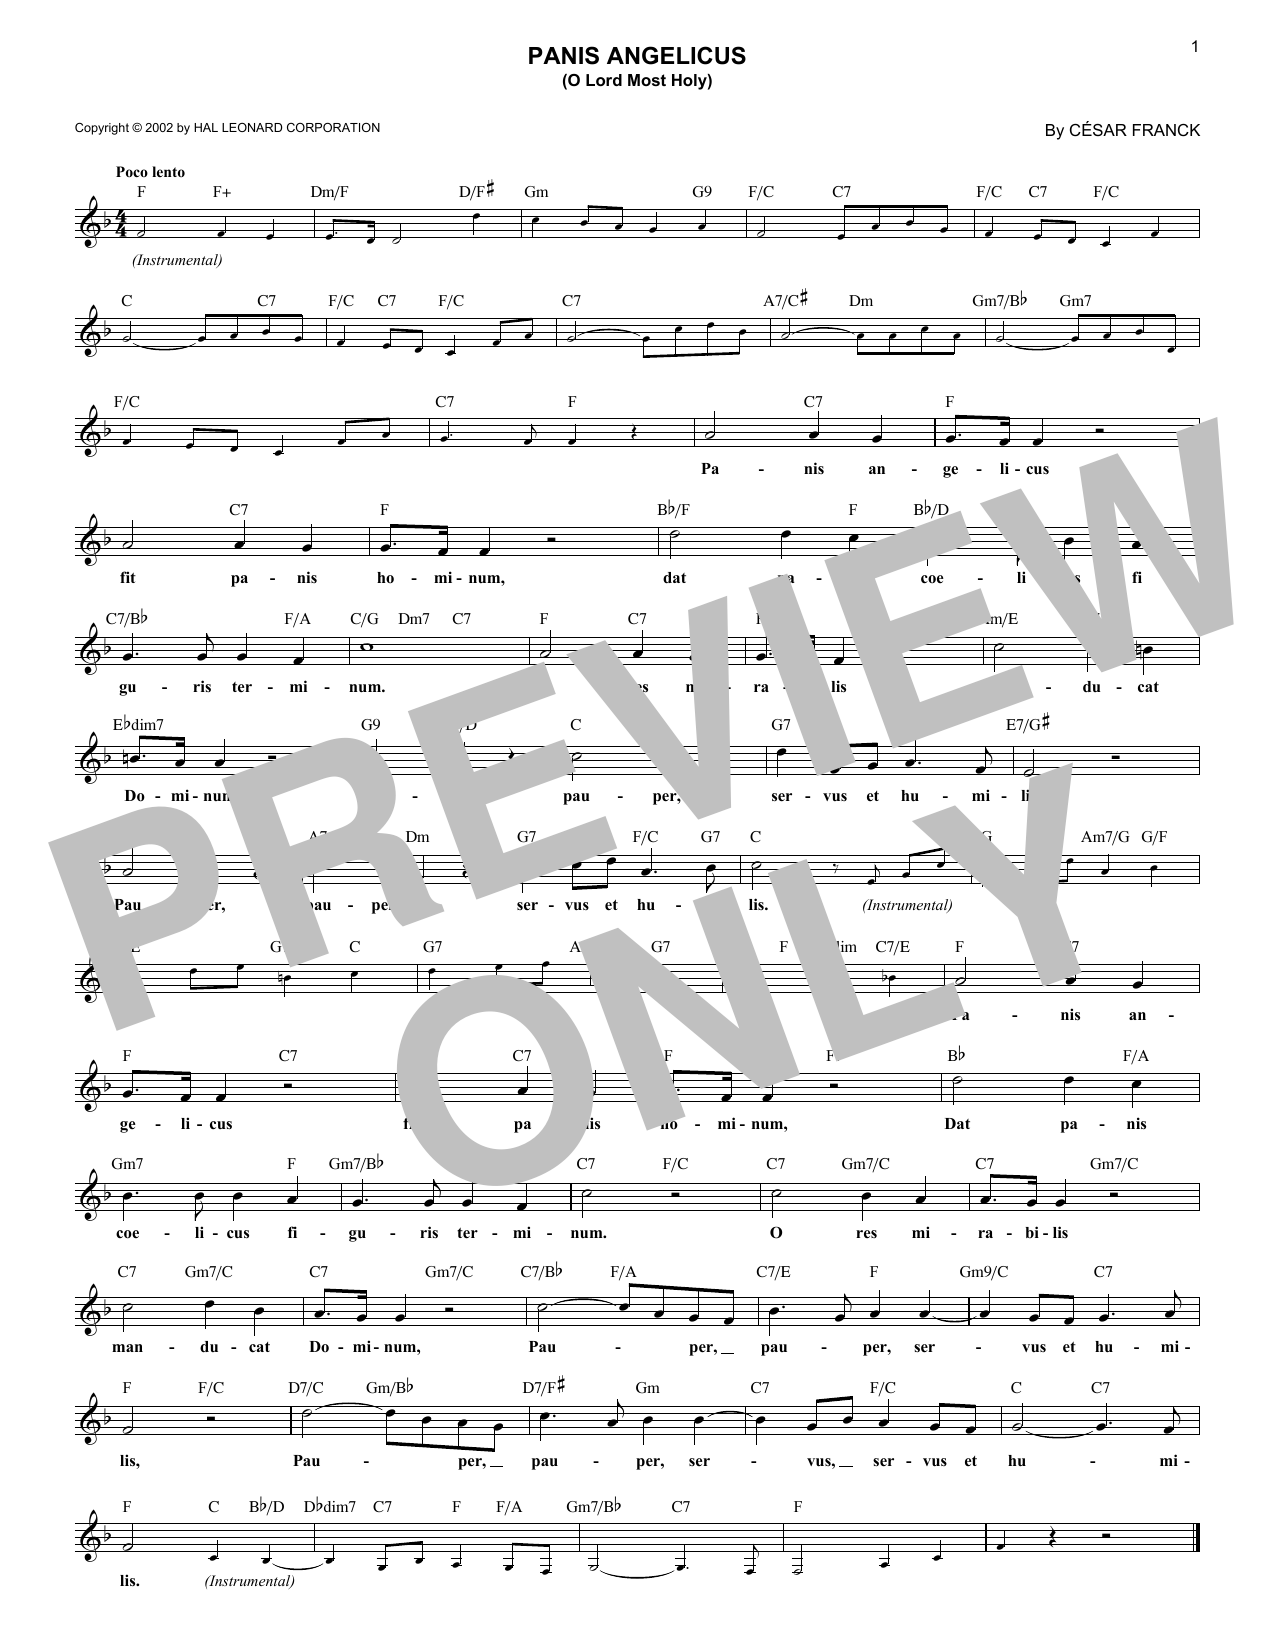 Panis Angelicus (O Lord Most Holy) (Lead Sheet / Fake Book)